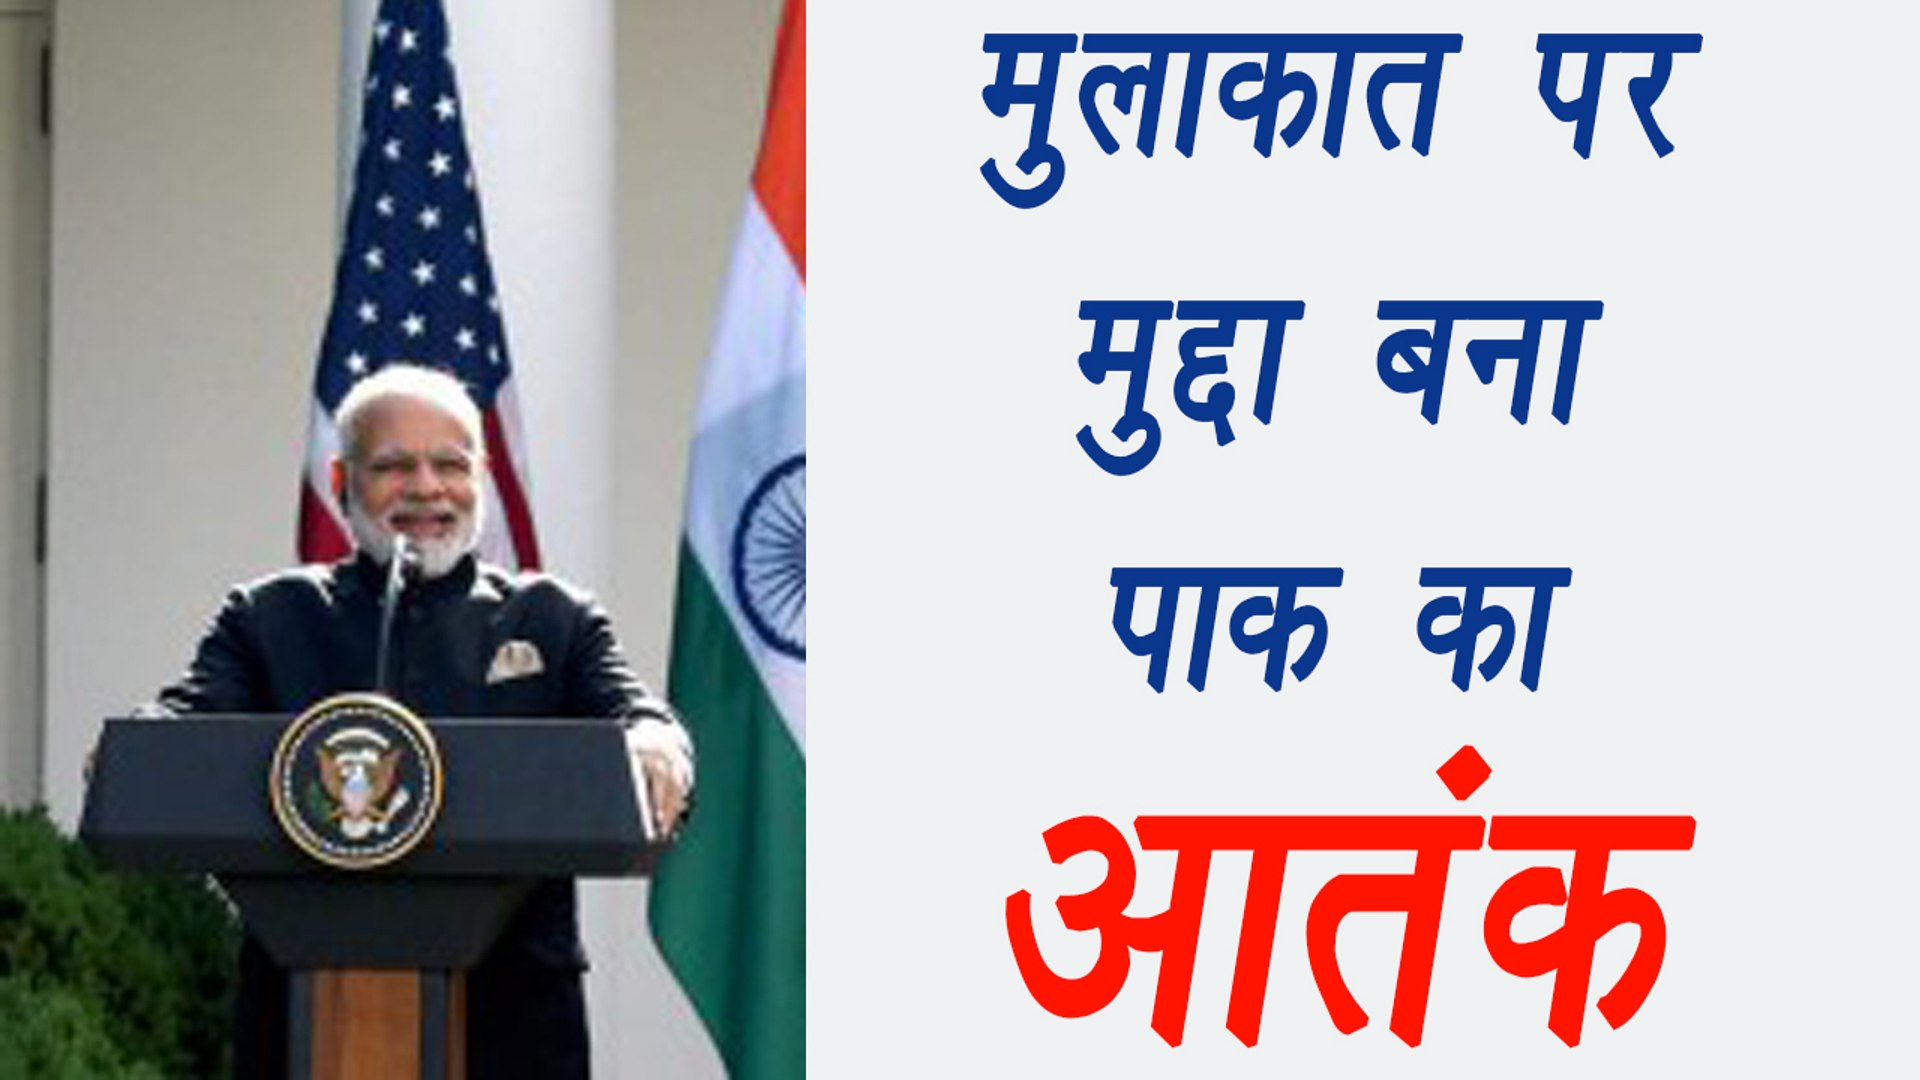 PM Modi in US: PM Modi slams Pakistan over Terrorism  । वनइंडिया हिंदी